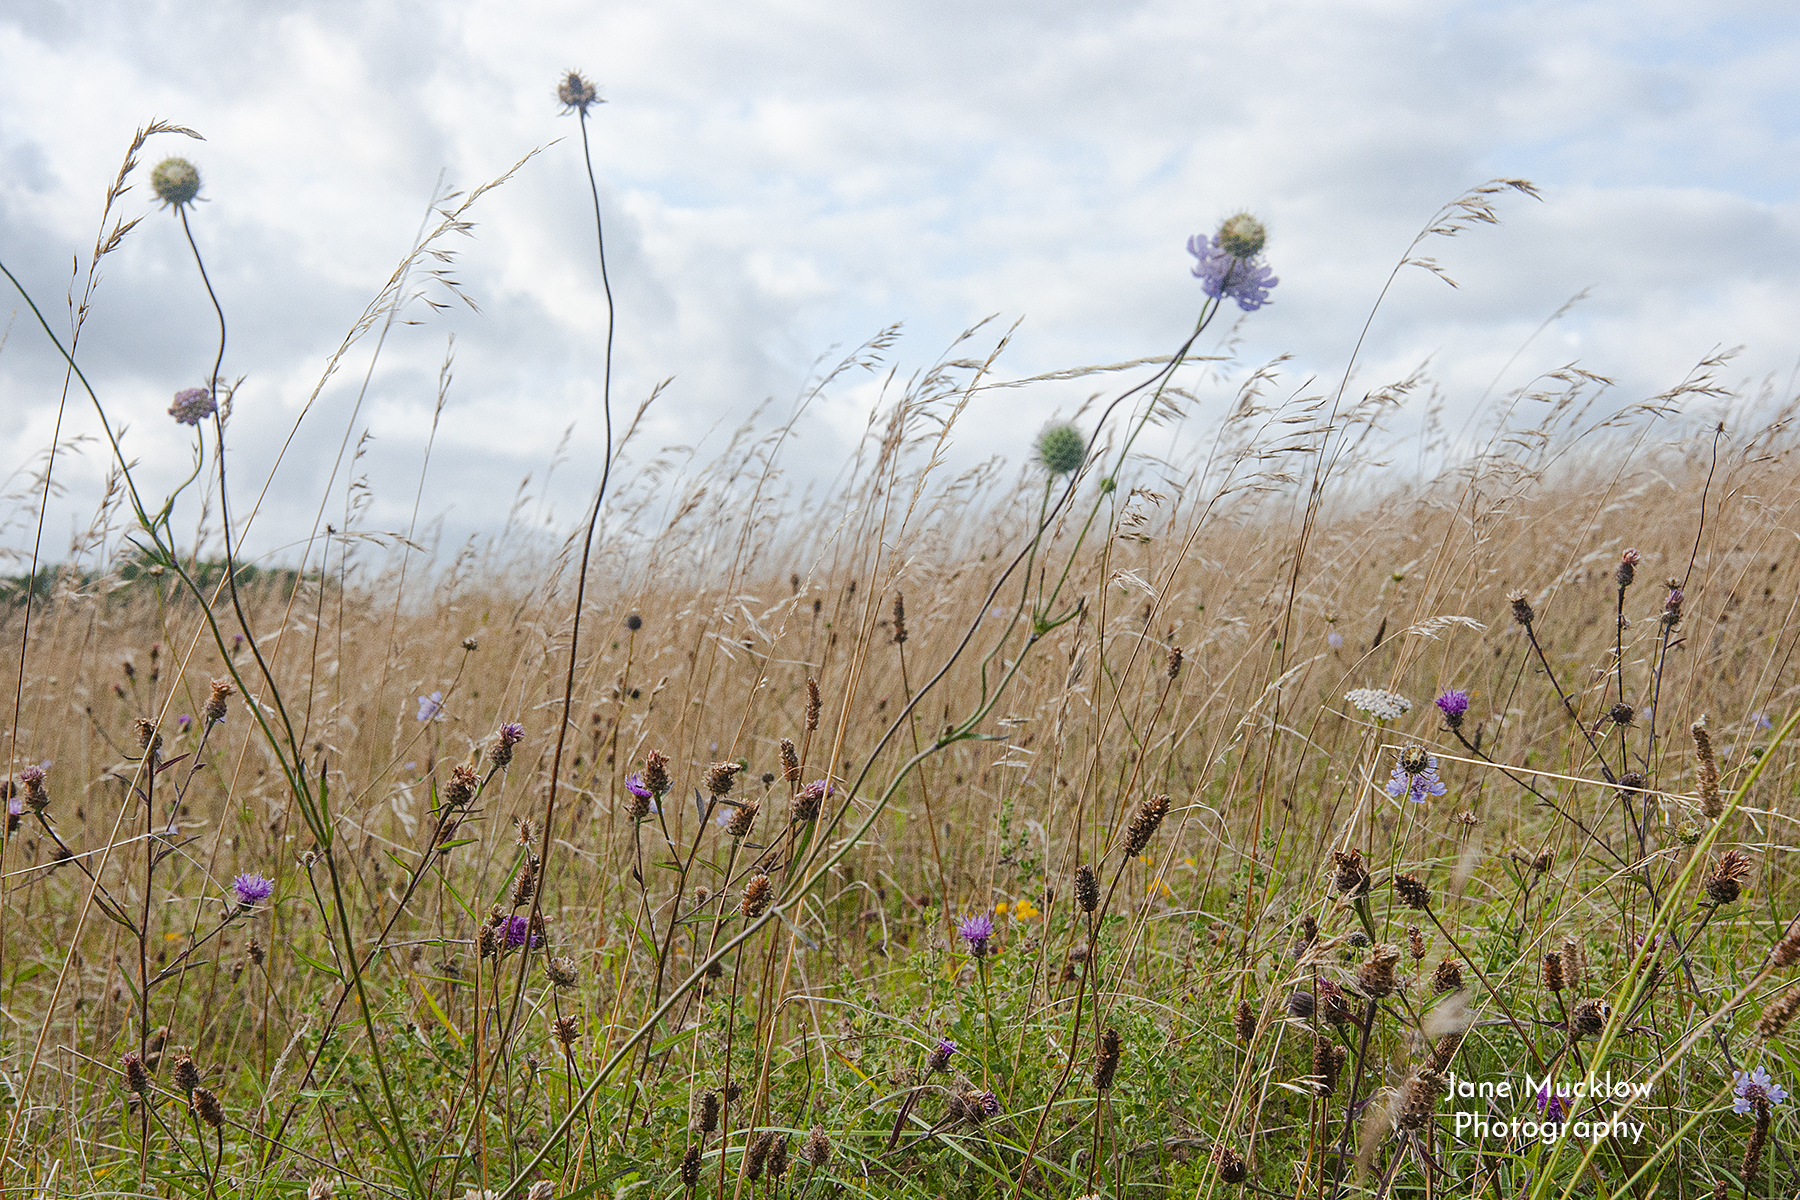 Photo by Jane Mucklow of wildflowers on Kemsing Downs, Kent.